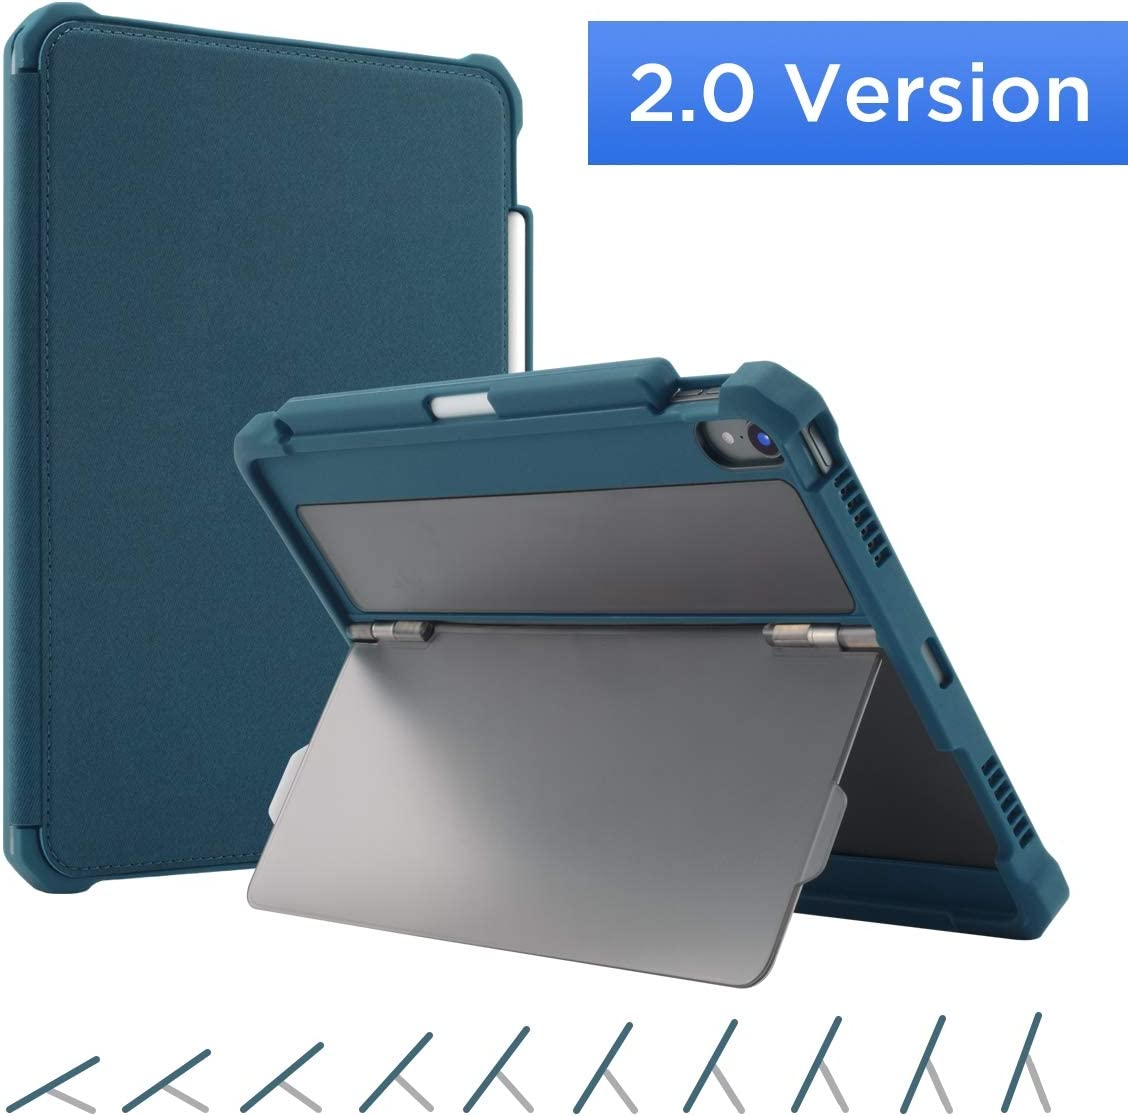 "Maxjoy Fit for iPad Pro 11 Case, iPad Pro 11 Cover, [Support Pencil Charging], Shockproof Rugged iPad 11 Protective Cover with Kickstand + Sleep/Wake + Apple Pencil Holder for iPad Pro 11"" 2018, Blue"